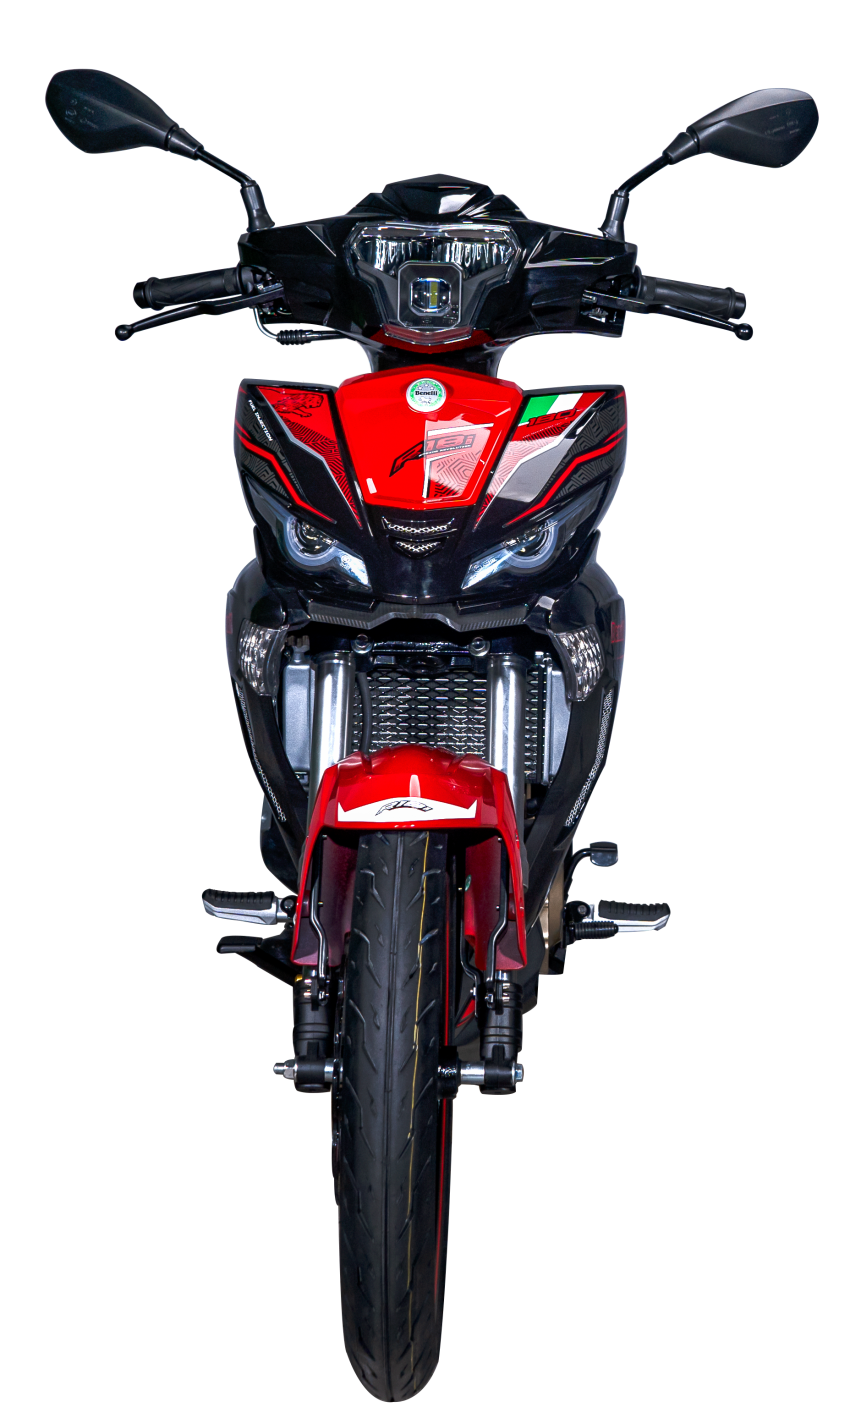 2021 Benelli R18i Malaysian launch –  174 cc, six-speed, RM7,999 Standard, RM8,299 Special Edition Image #1277425